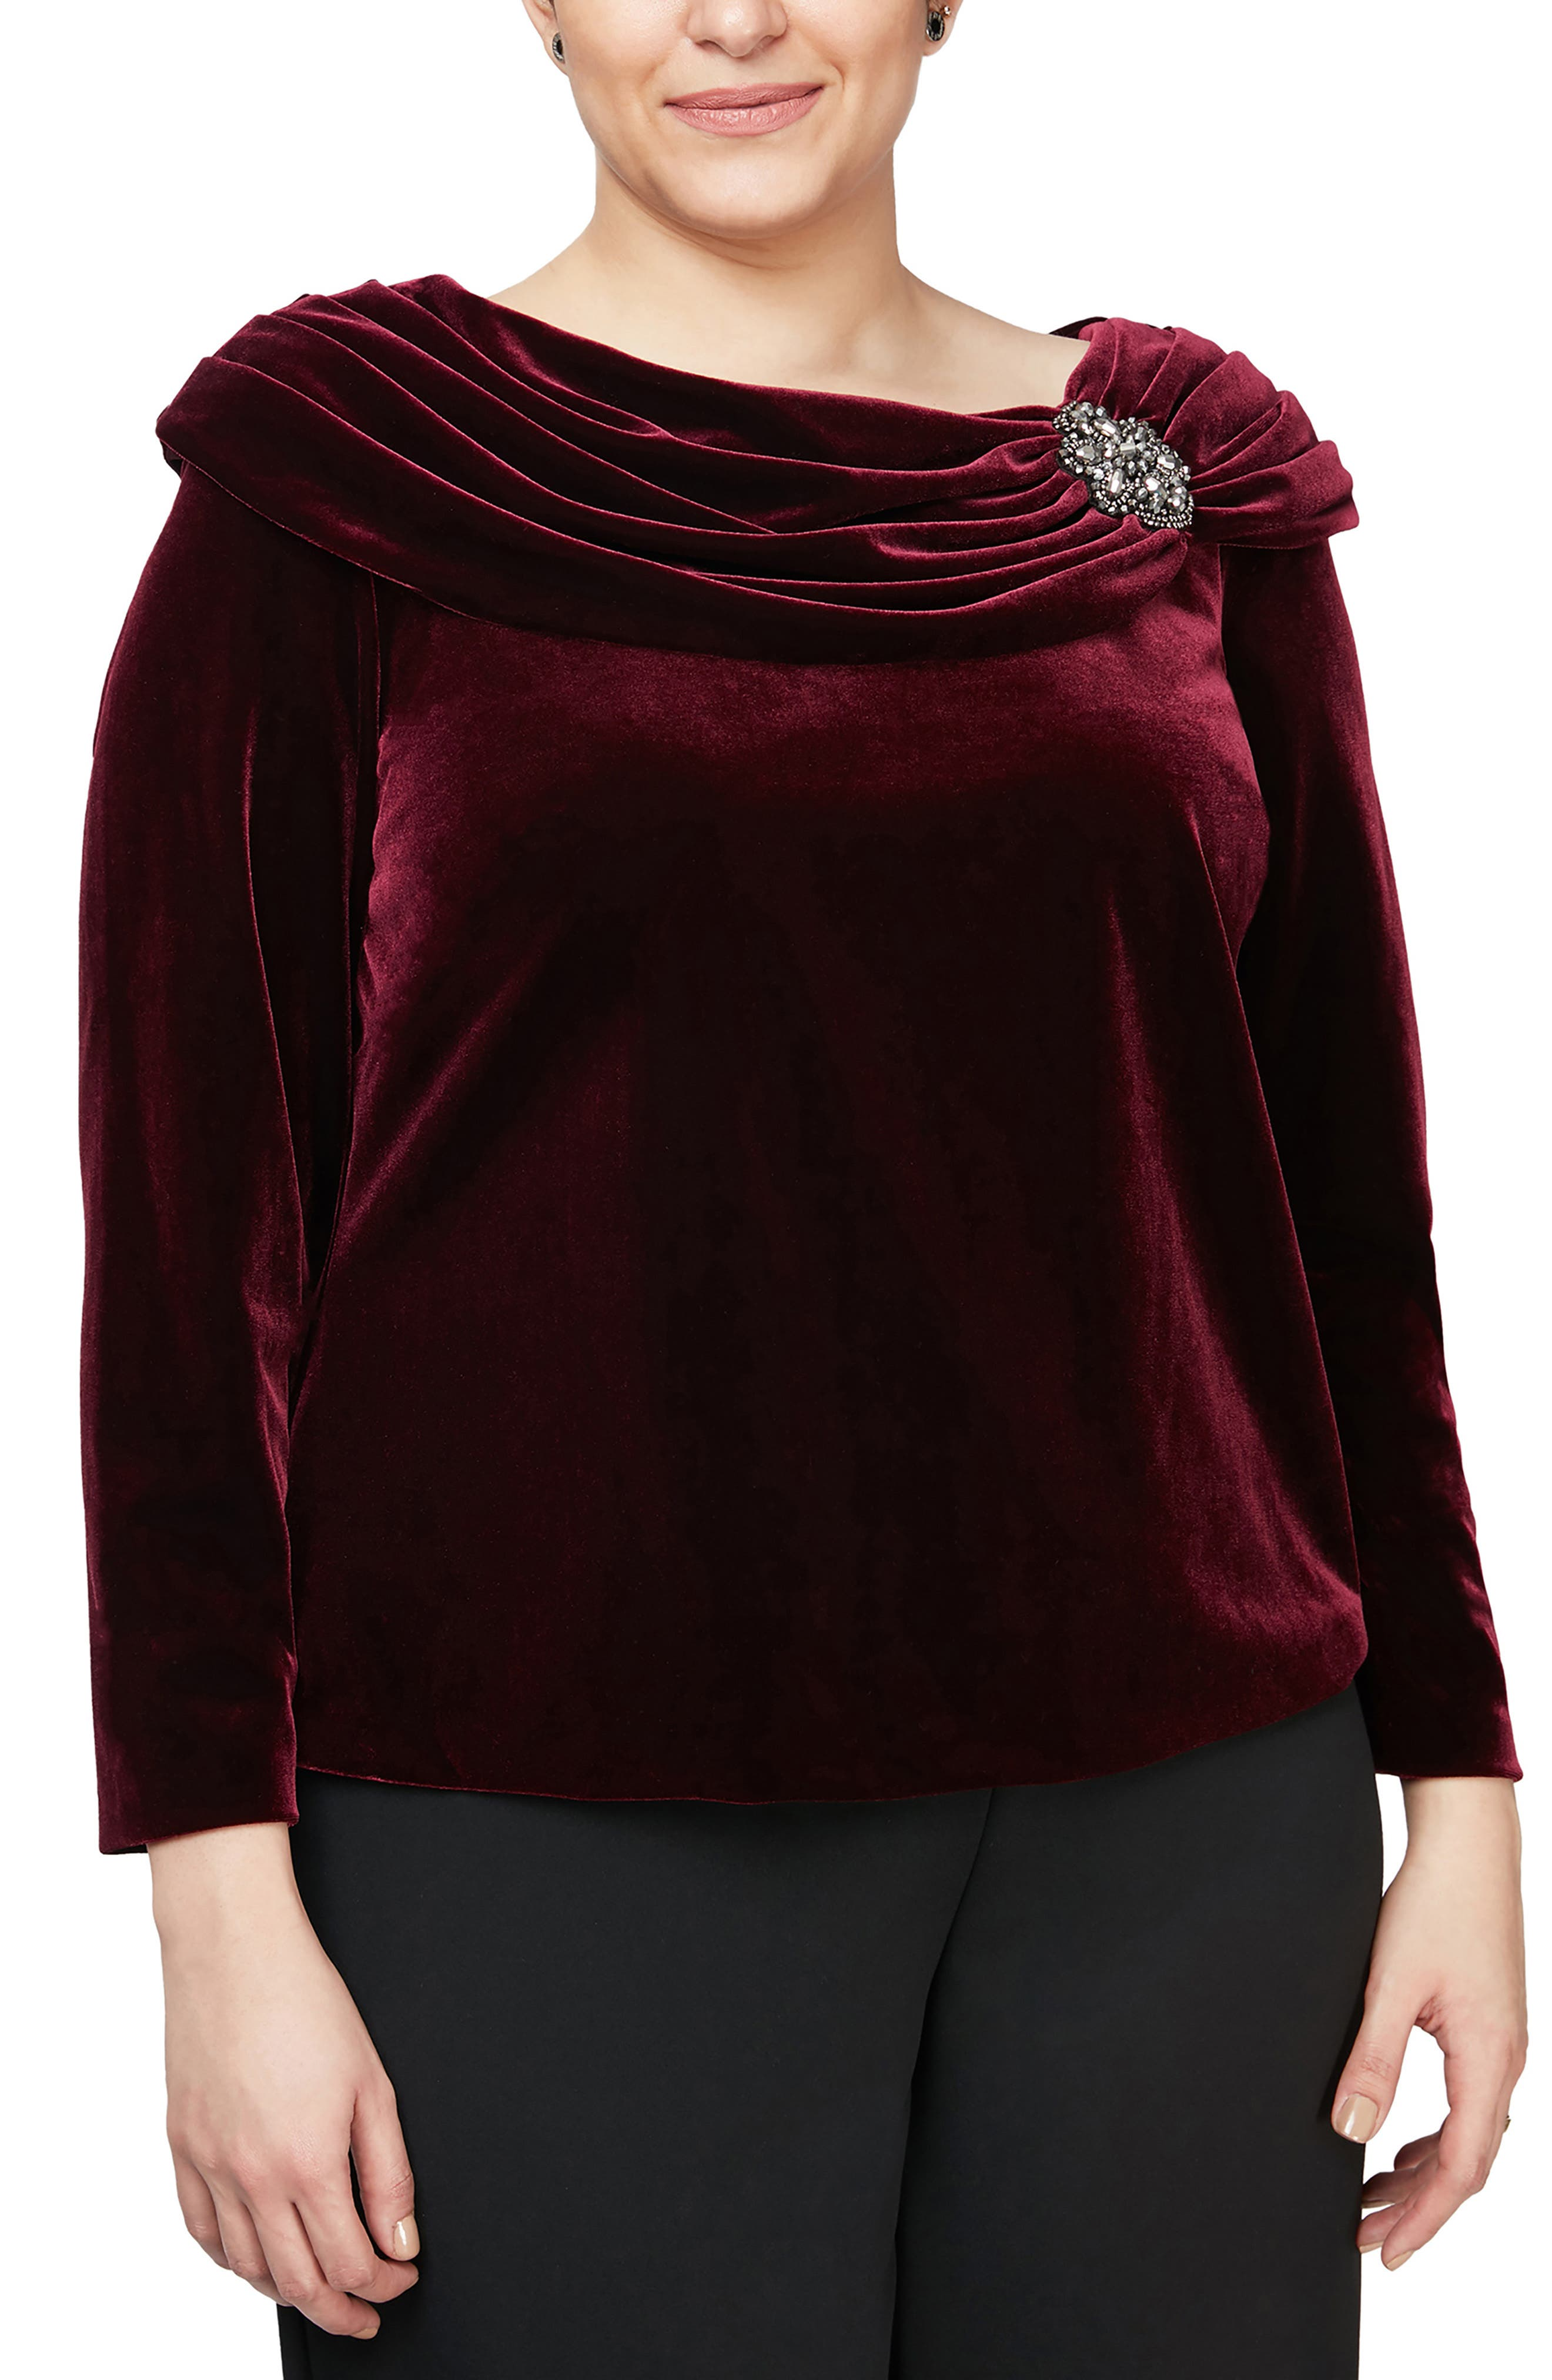 A rich velvet top clasped with a twinkling brooch and colored in a cabernet hue adds unmistakable glamour to your look whether you\\\'re going for fun or fancy. Style Name: Alex Evenings Brooch Detail Long Sleeve Velvet Top (Plus Size). Style Number: 6117951. Available in stores.